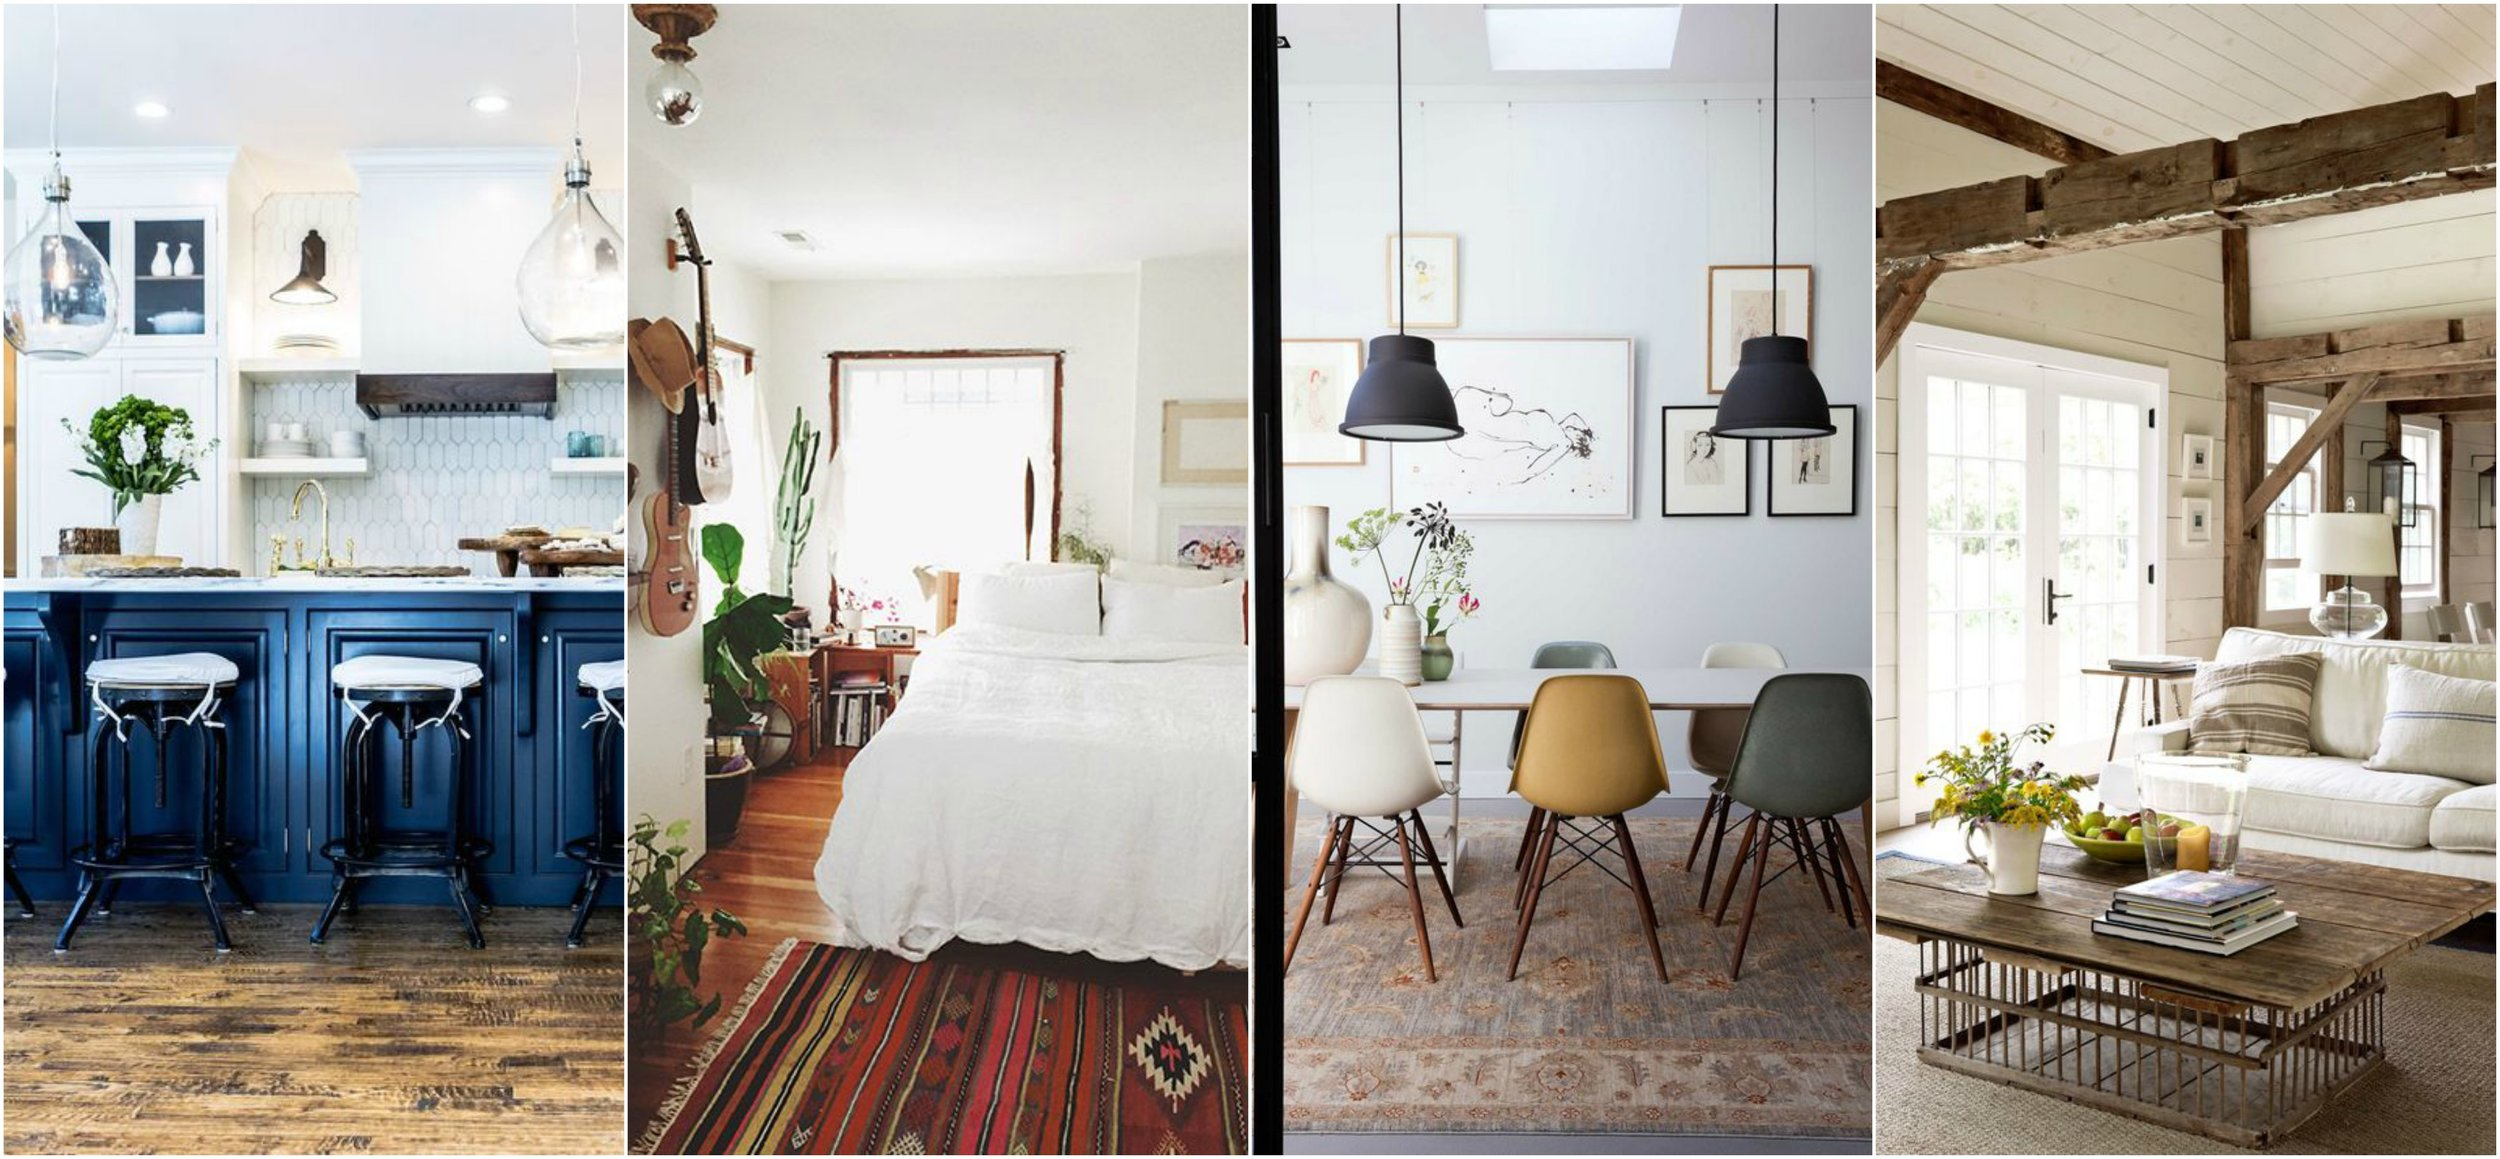 Images via  The Simply Luxurious Life ,  Gravity Home , and  Country Living